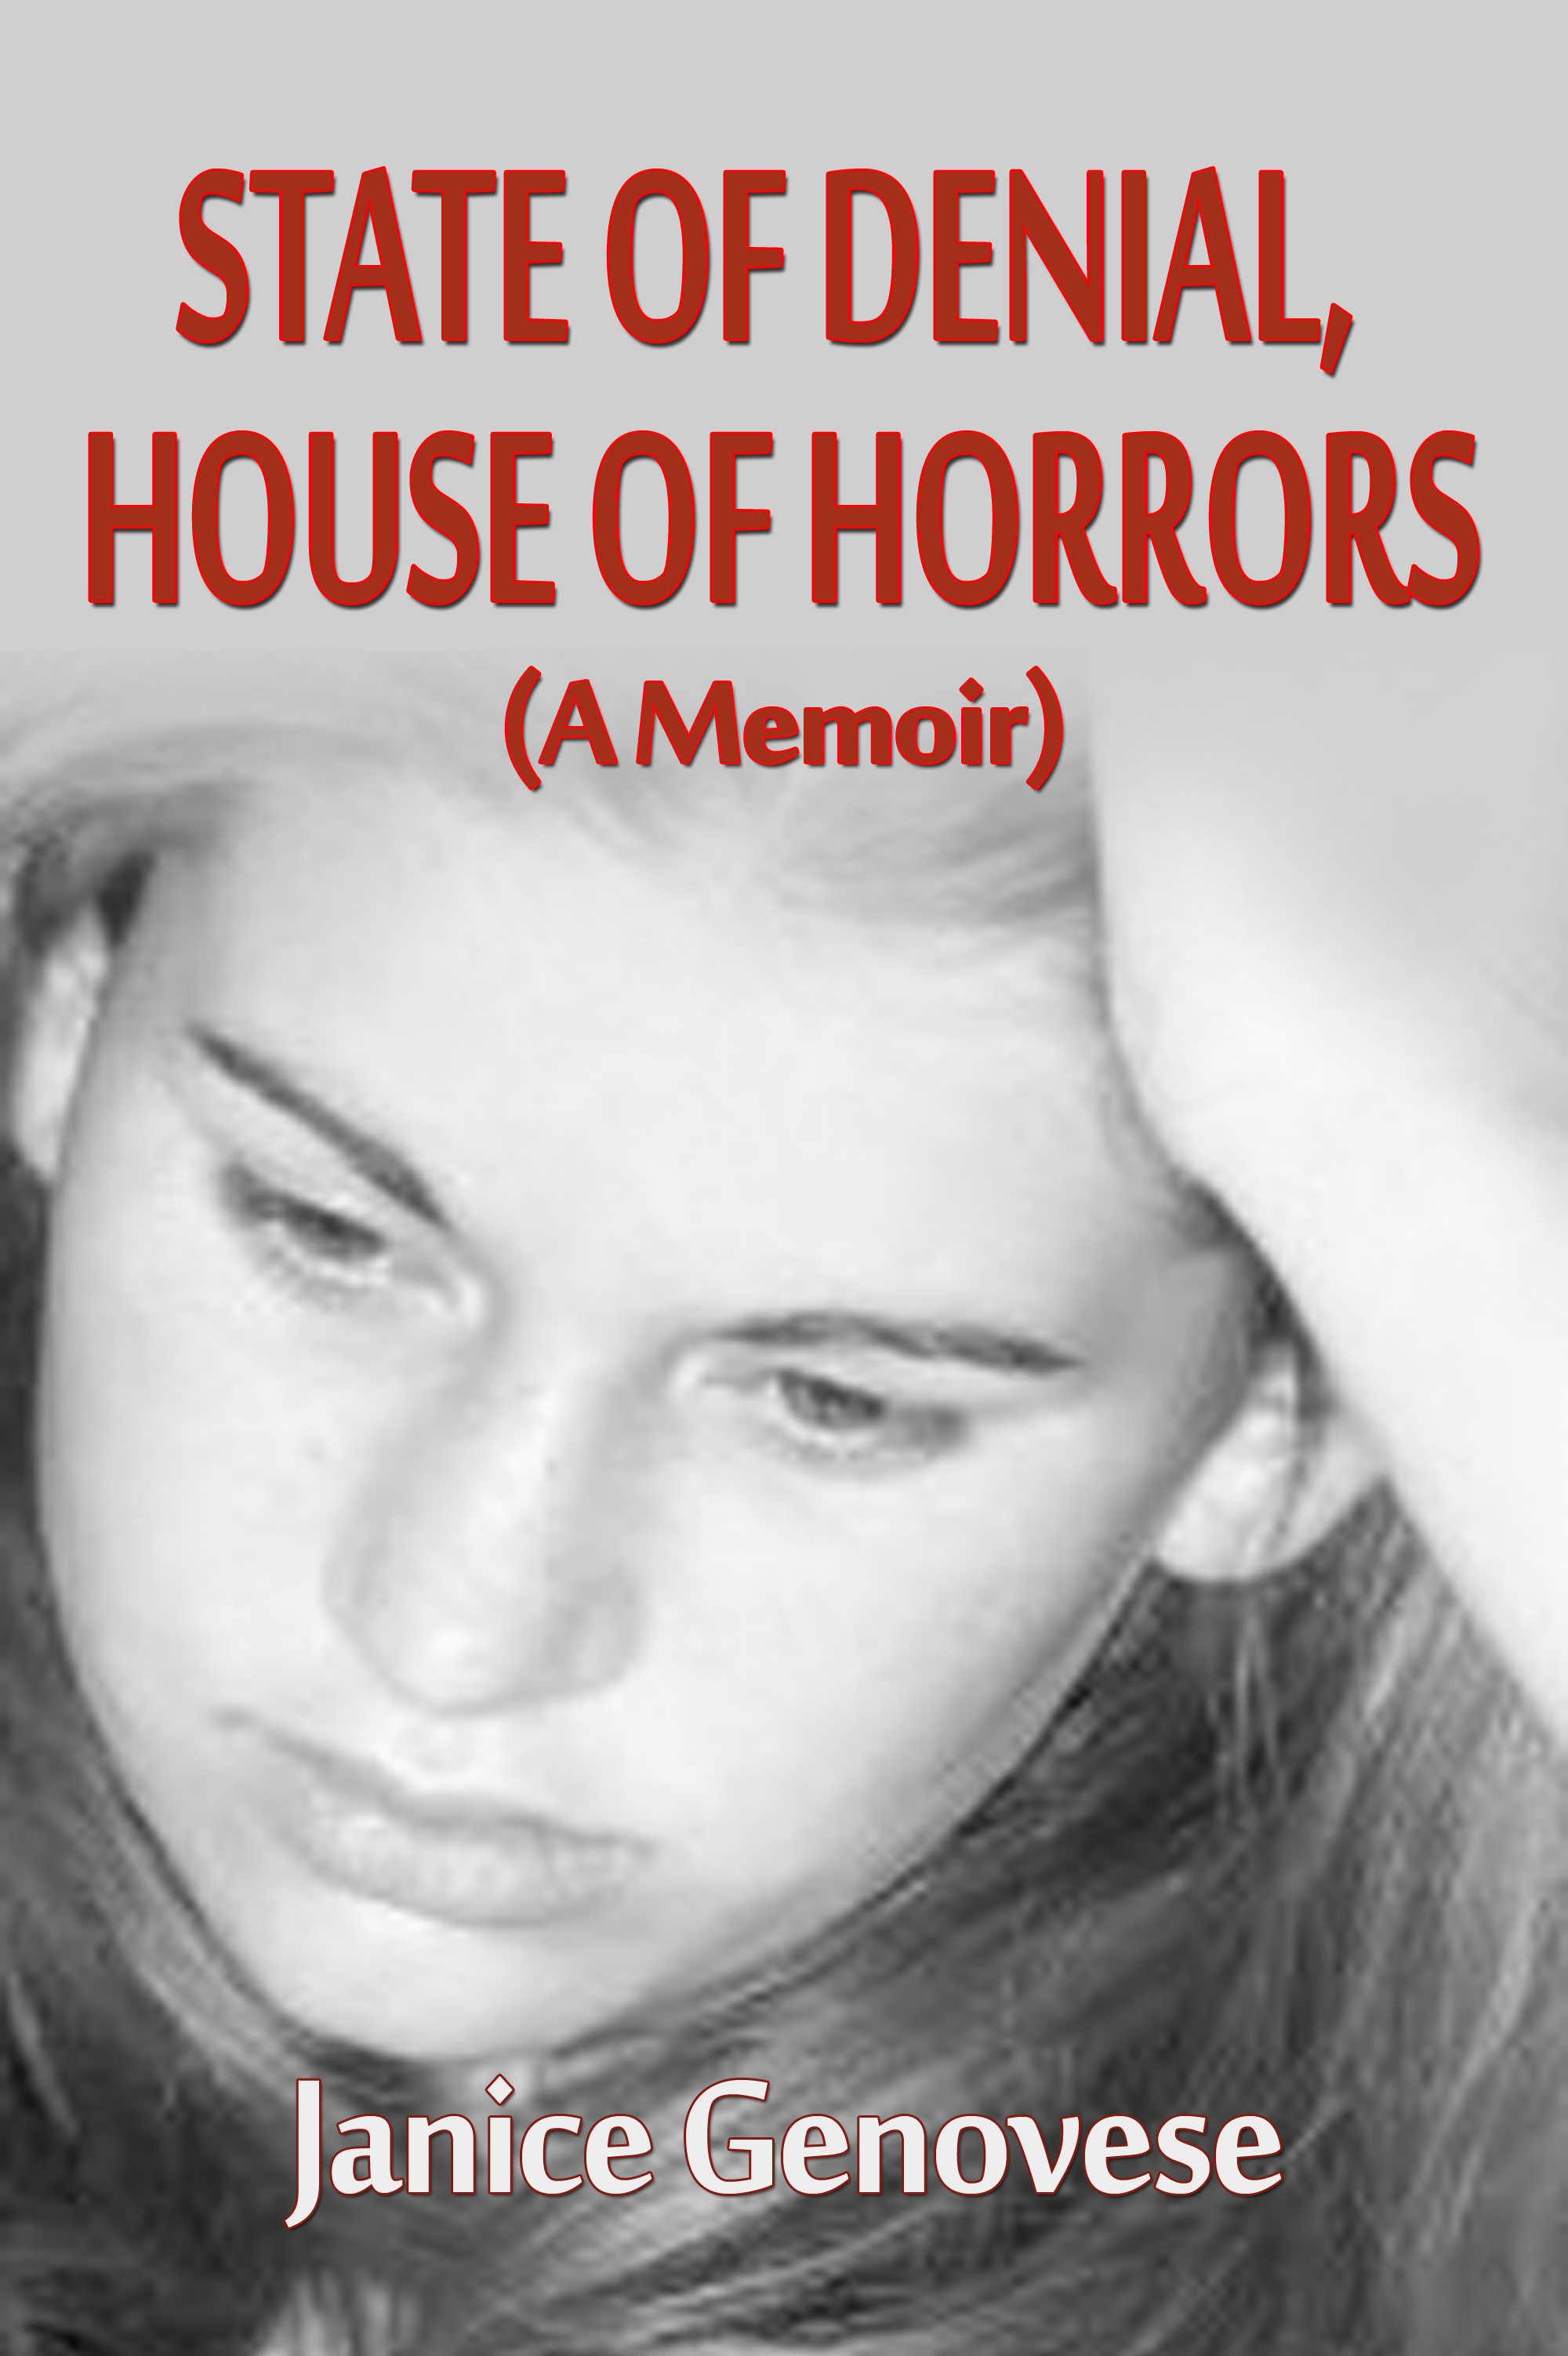 State of Denial, House of Horrors (A Memoir)